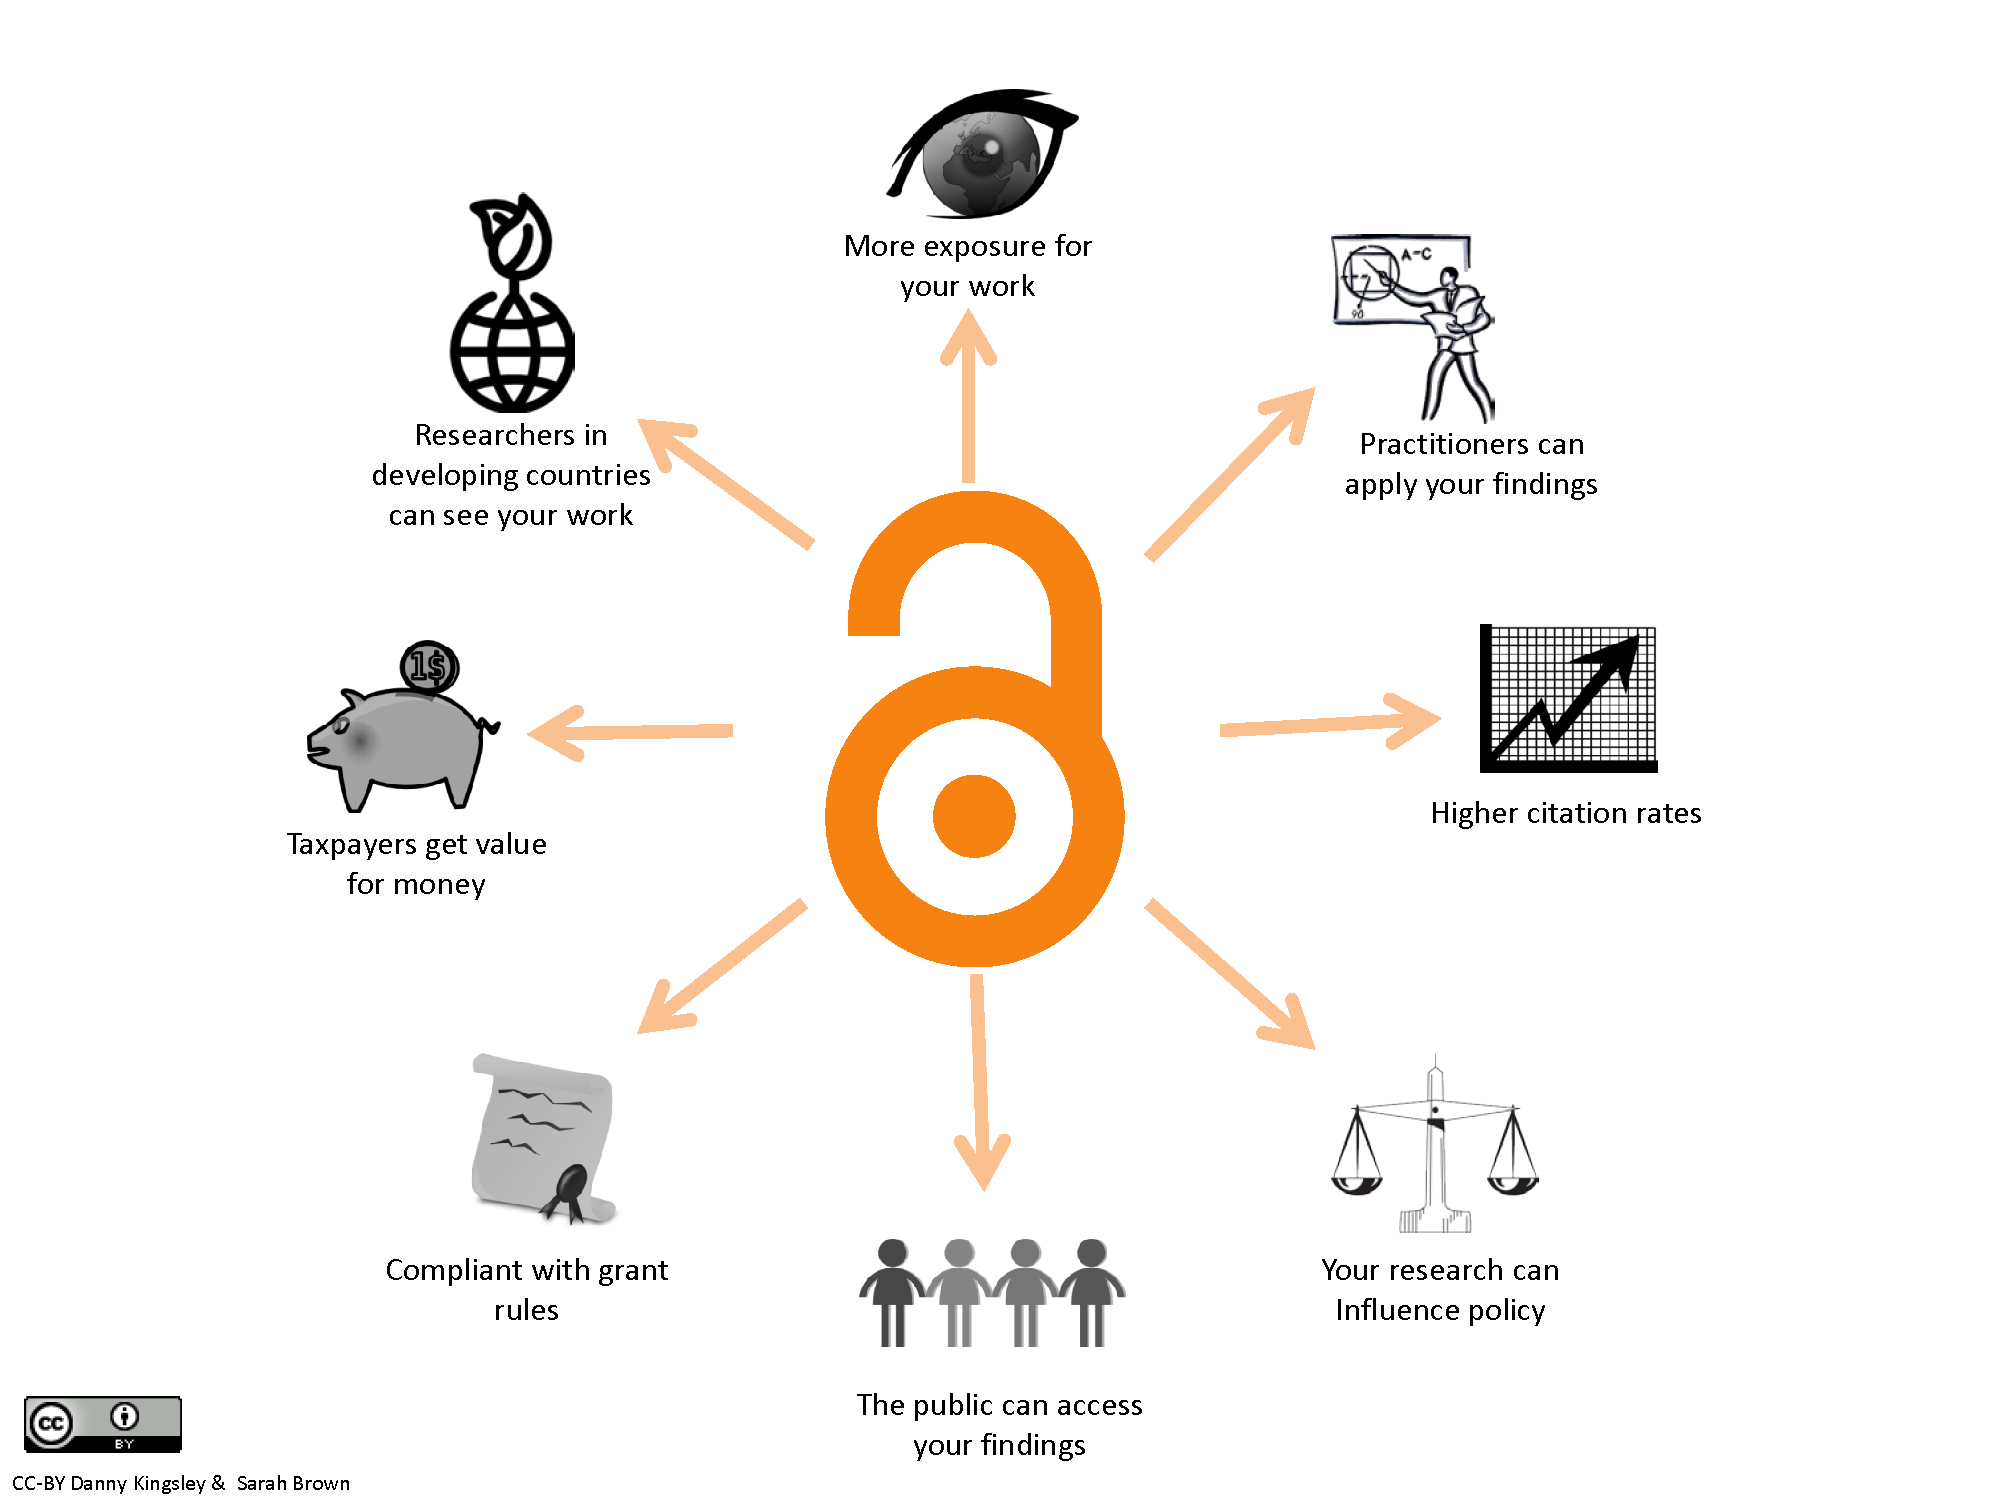 benefits of open access australasian open access strategy group